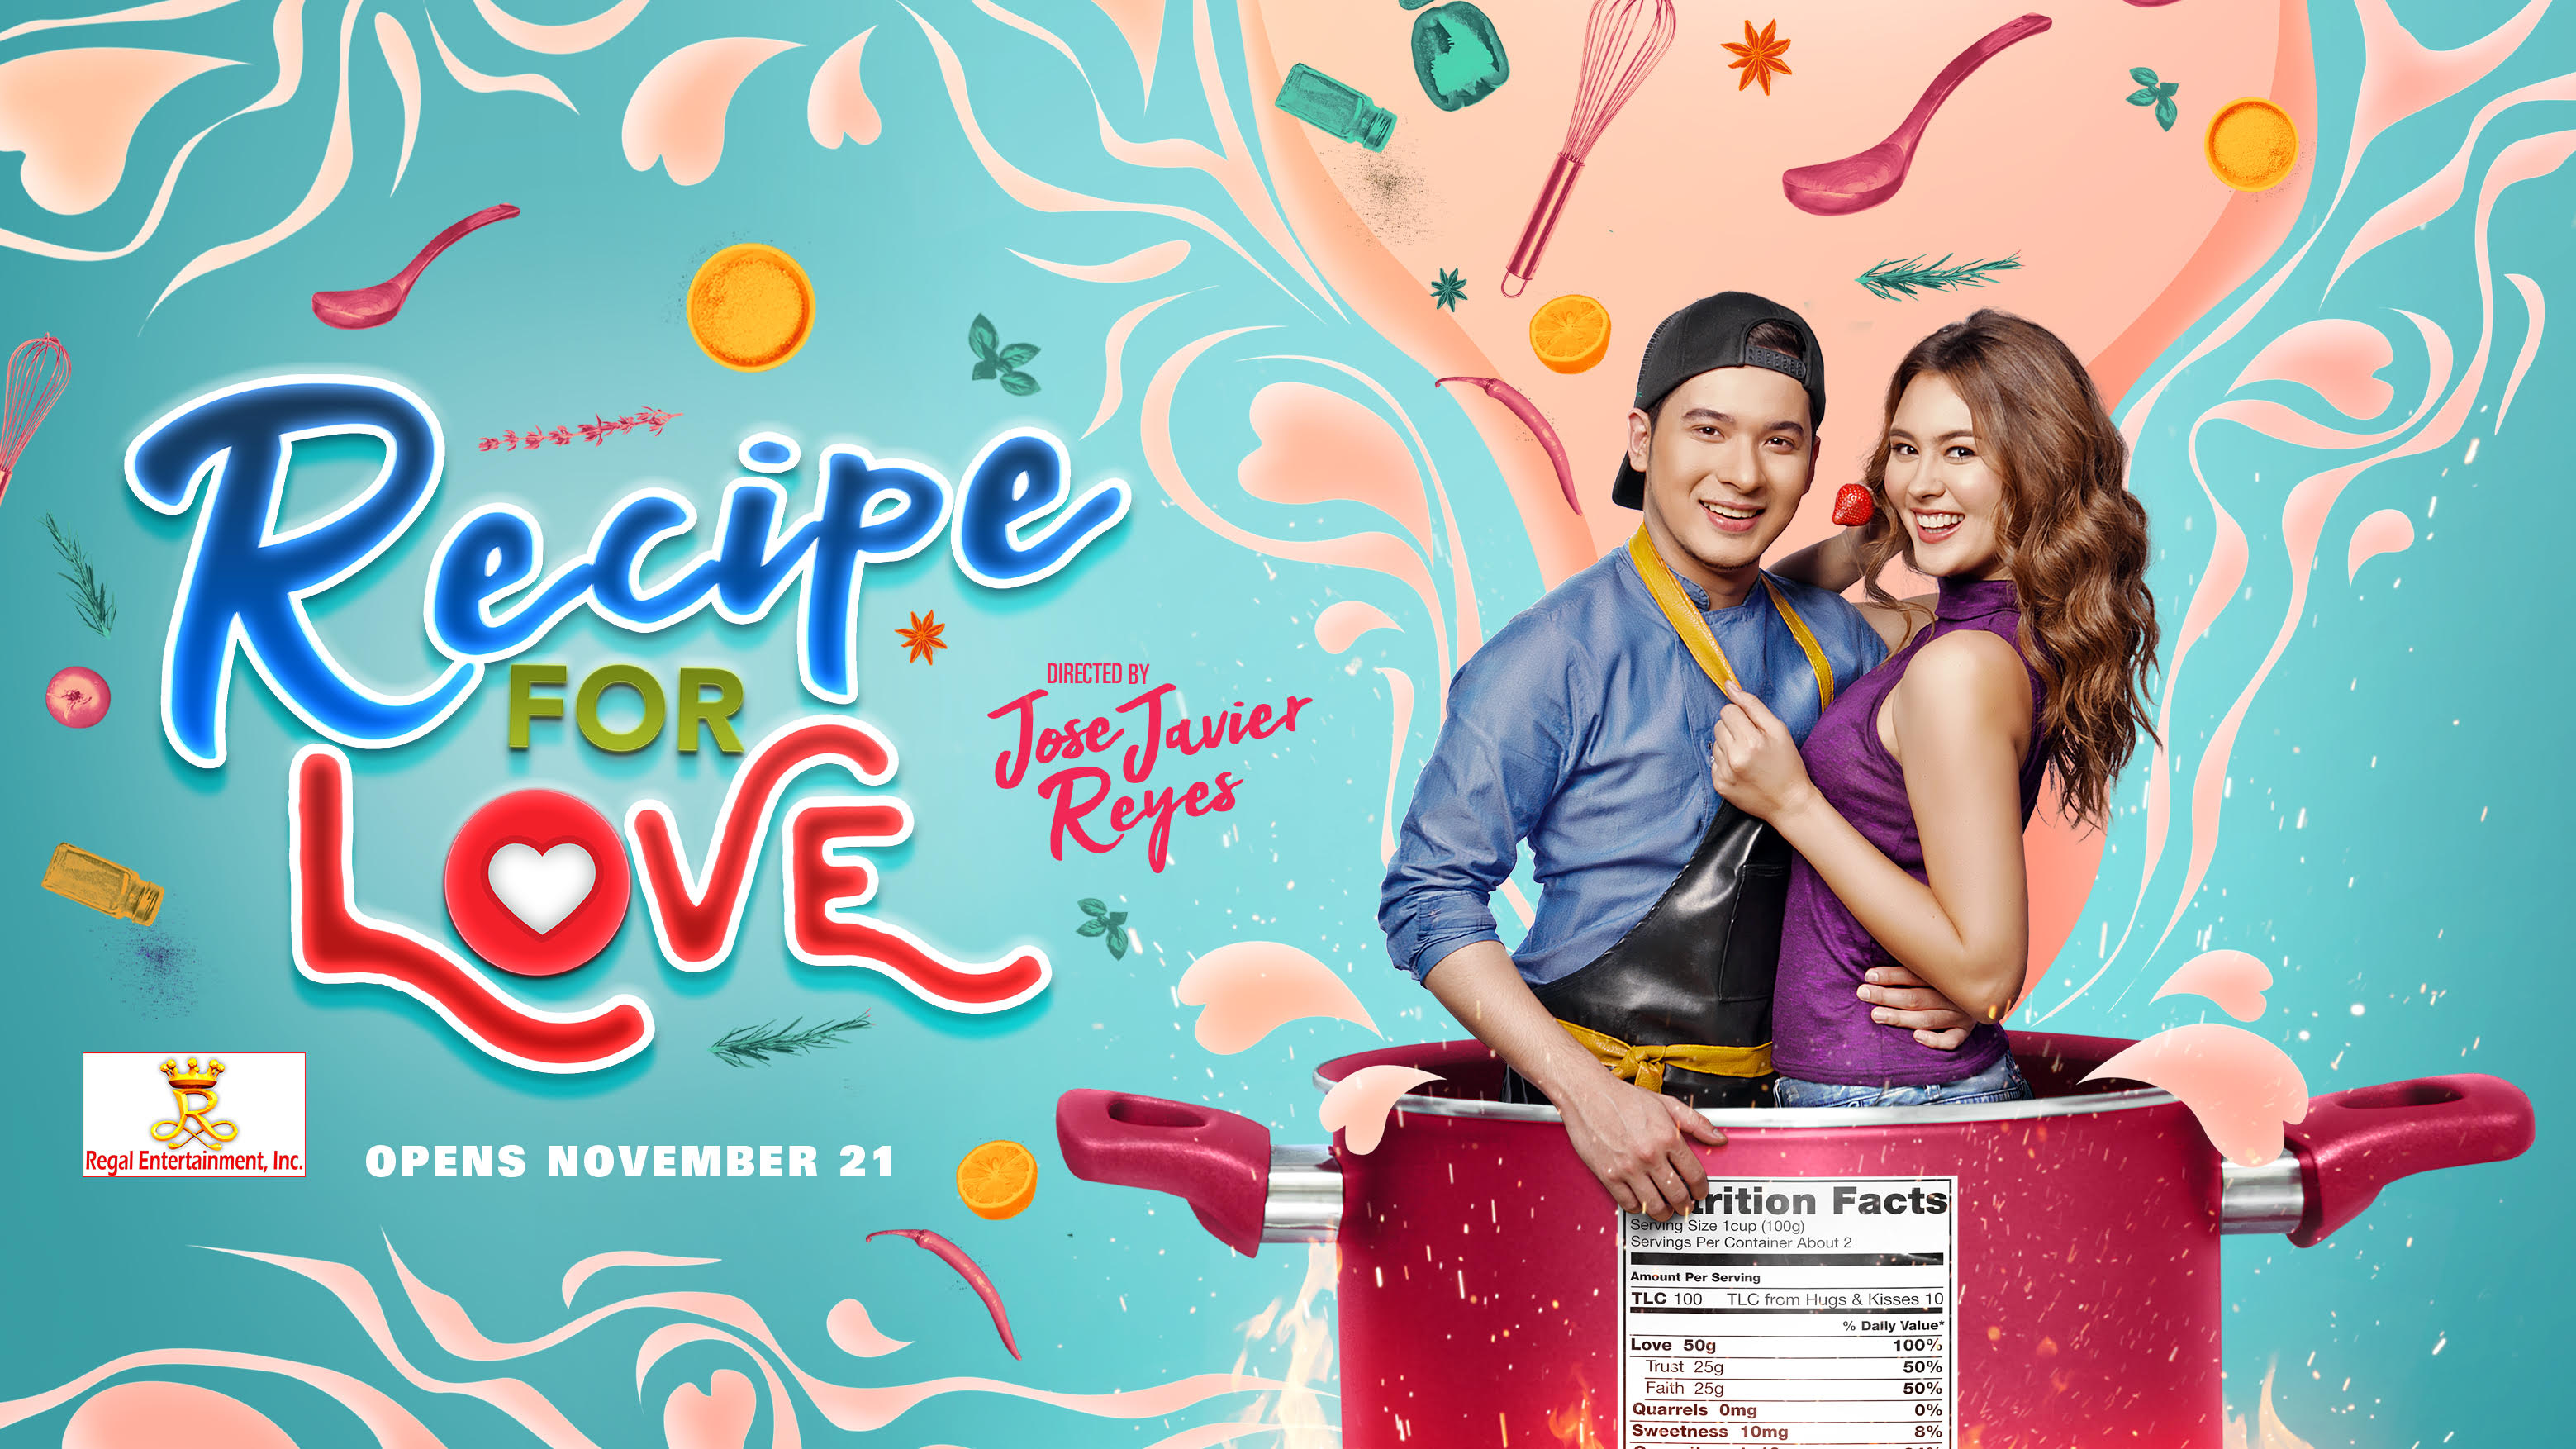 Christian Bables in His First RomCom Flick – Recipe For Love